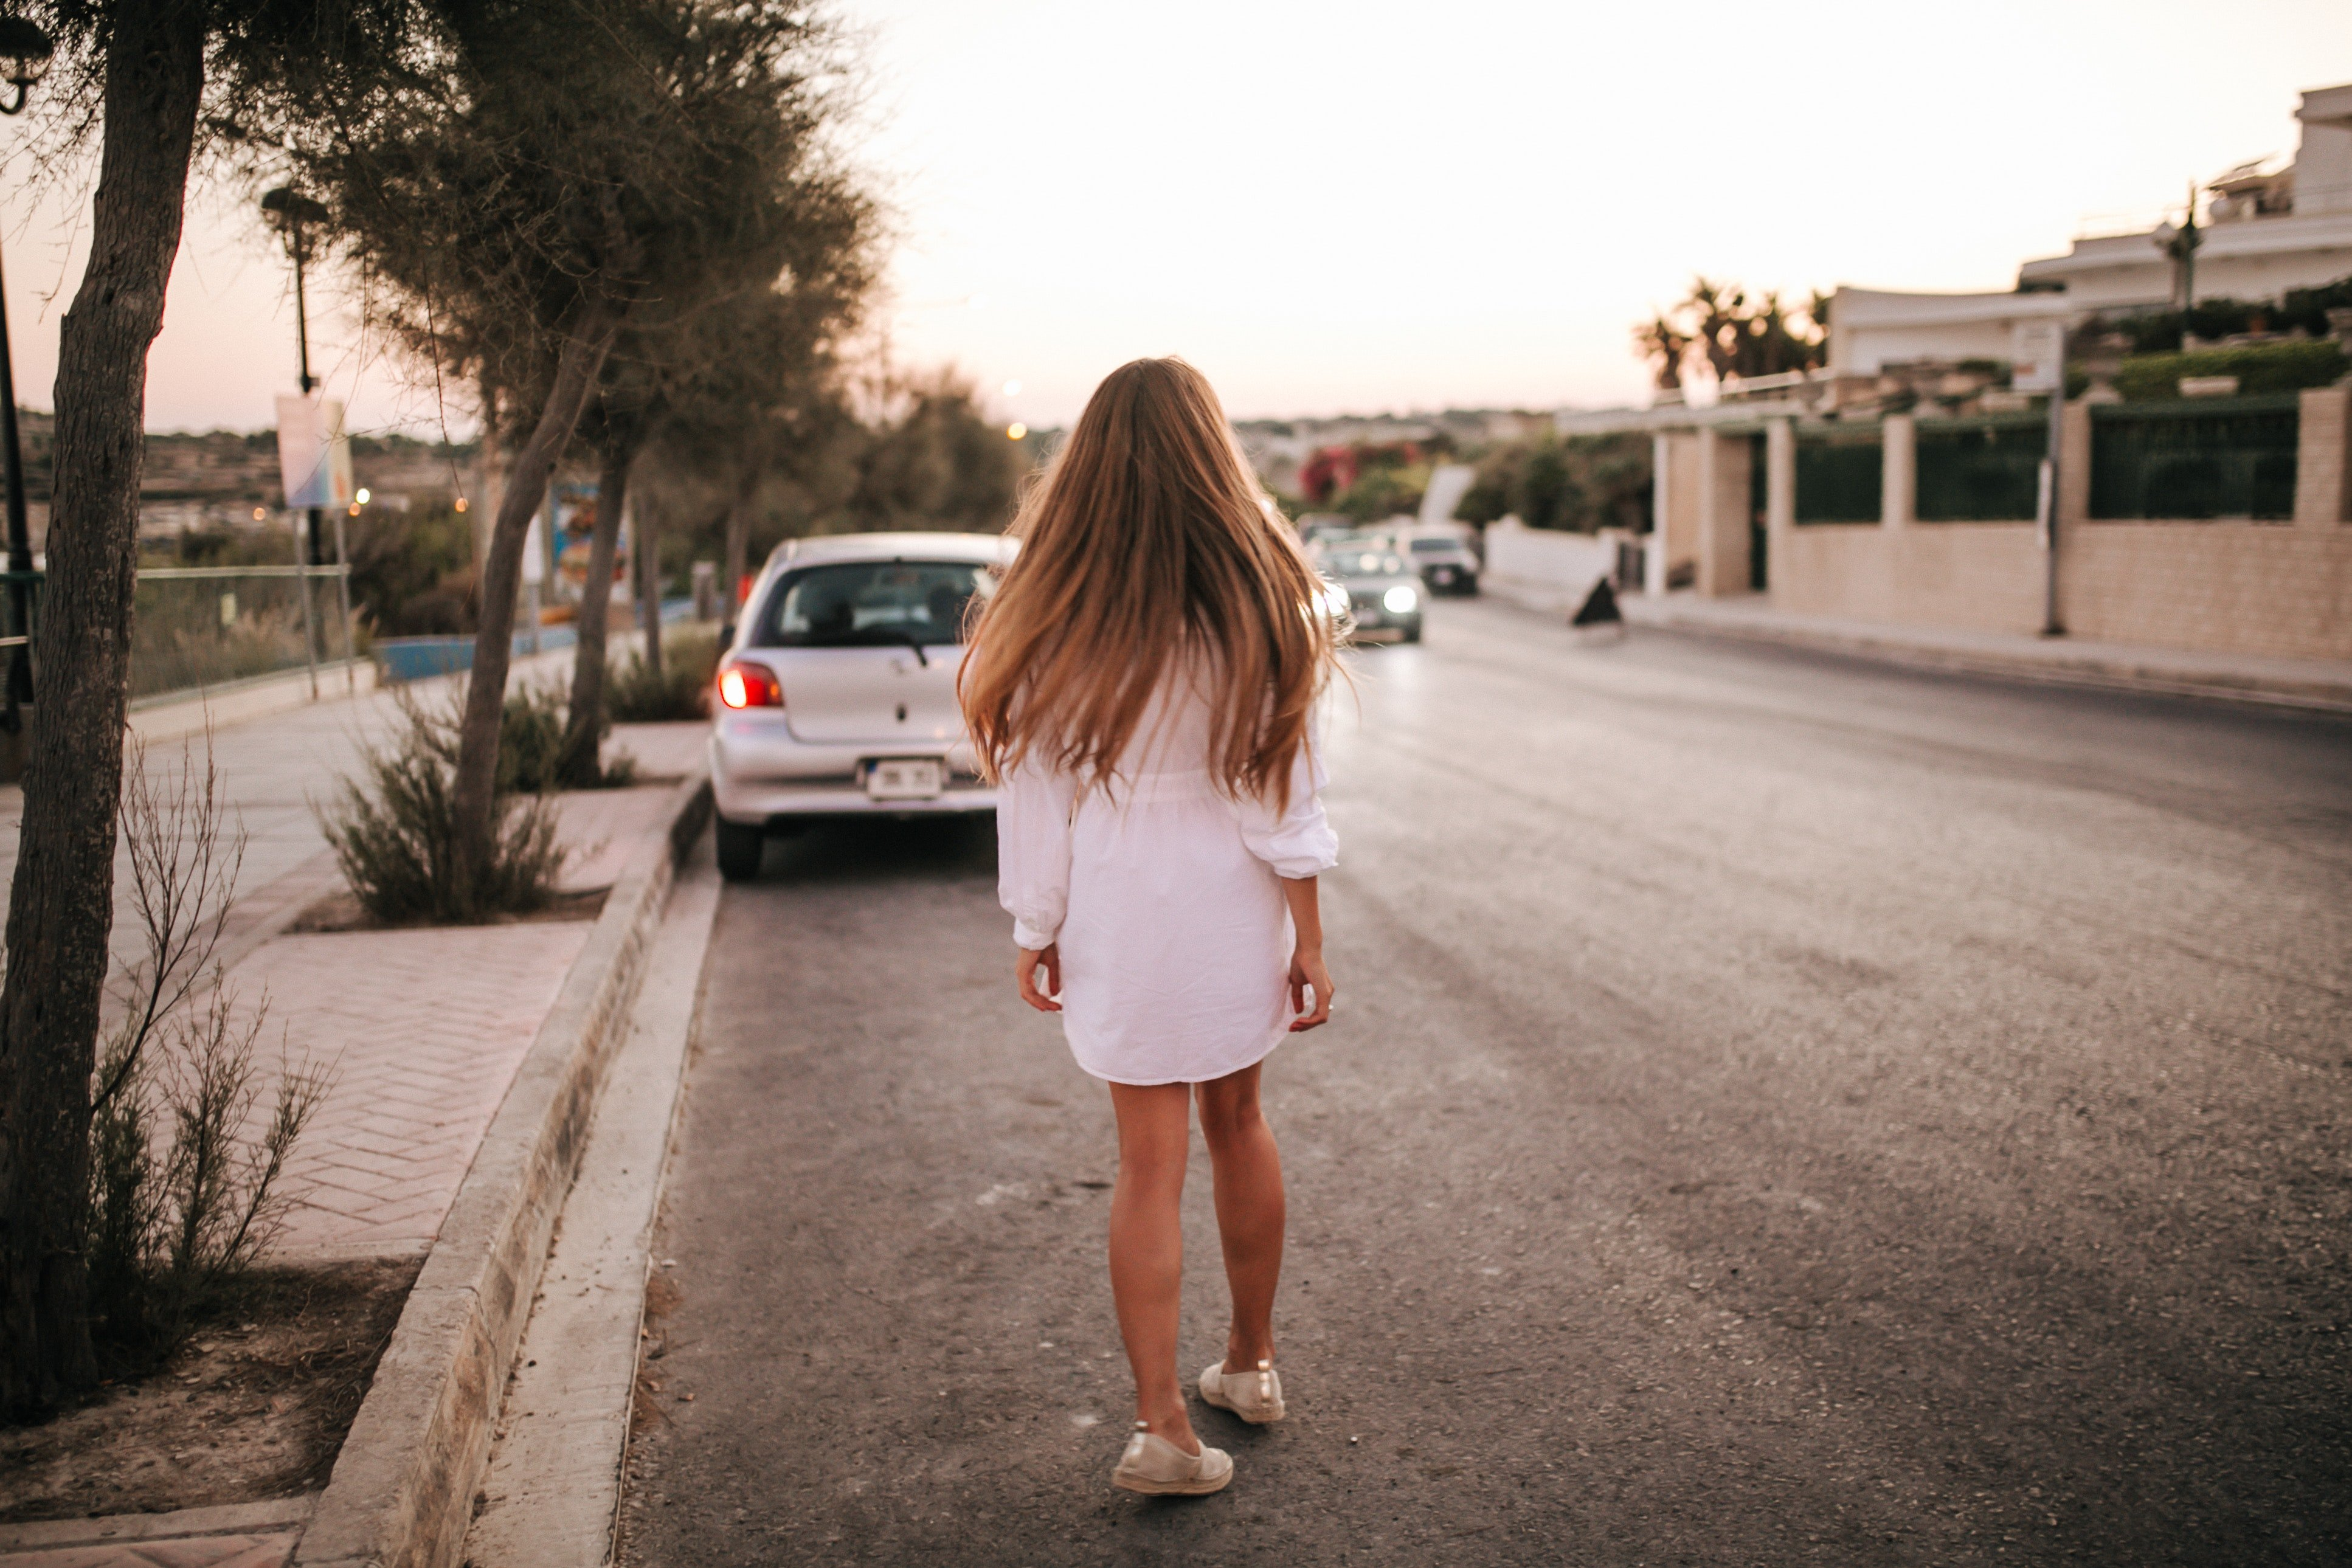 A woman walking on deserted road   Photo: Pexels